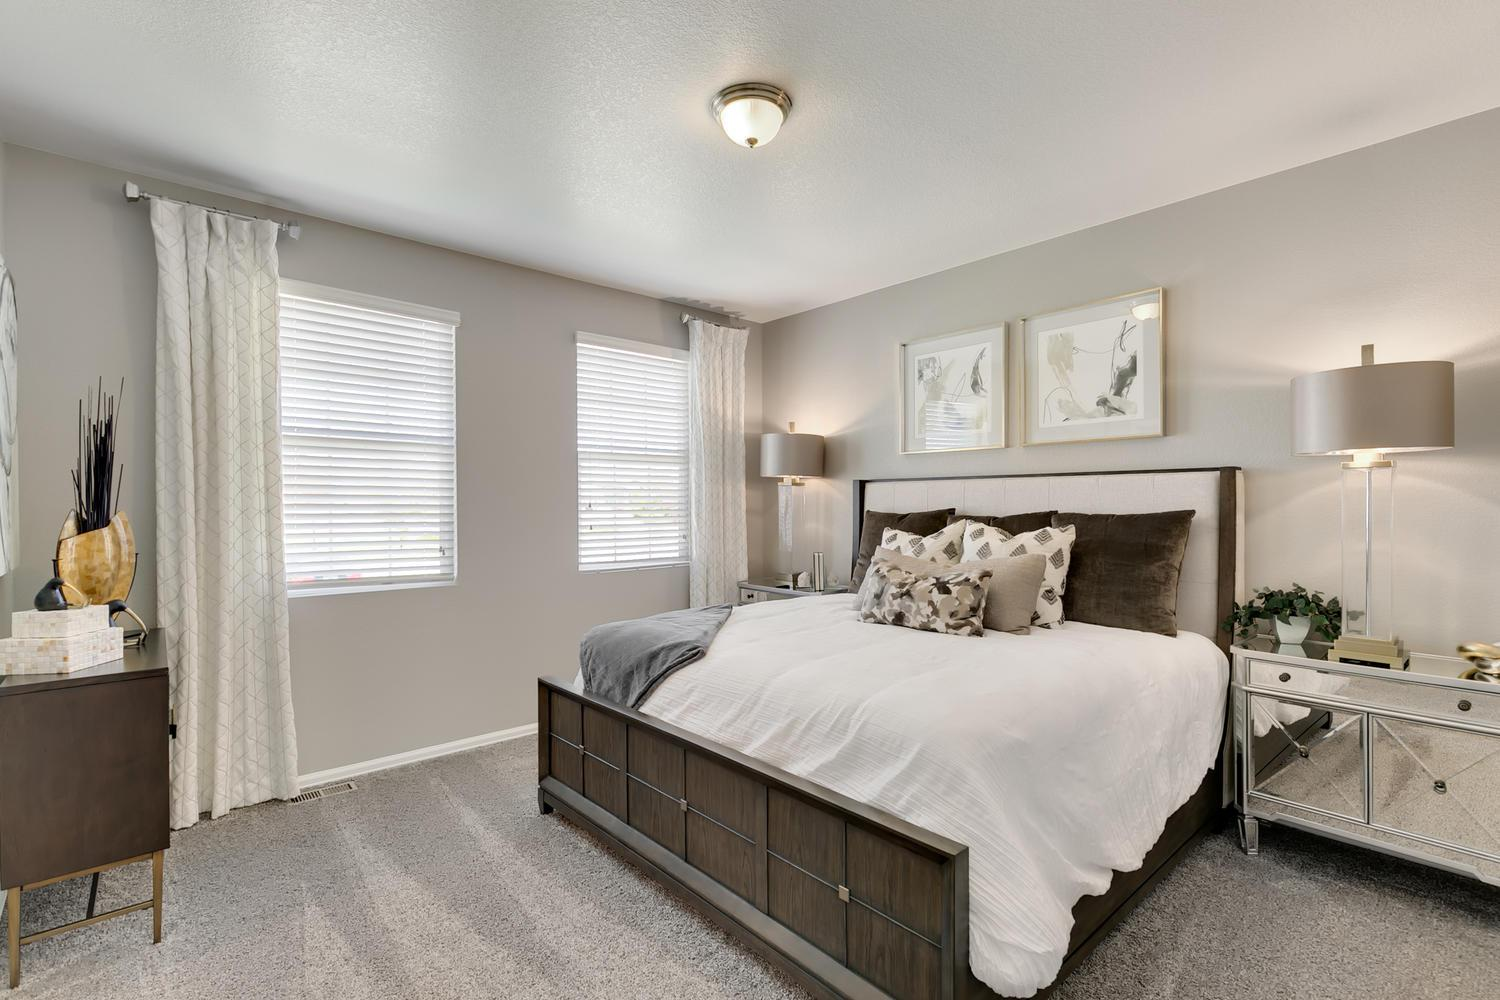 Bedroom featured in the CALI By D.R. Horton in Denver, CO